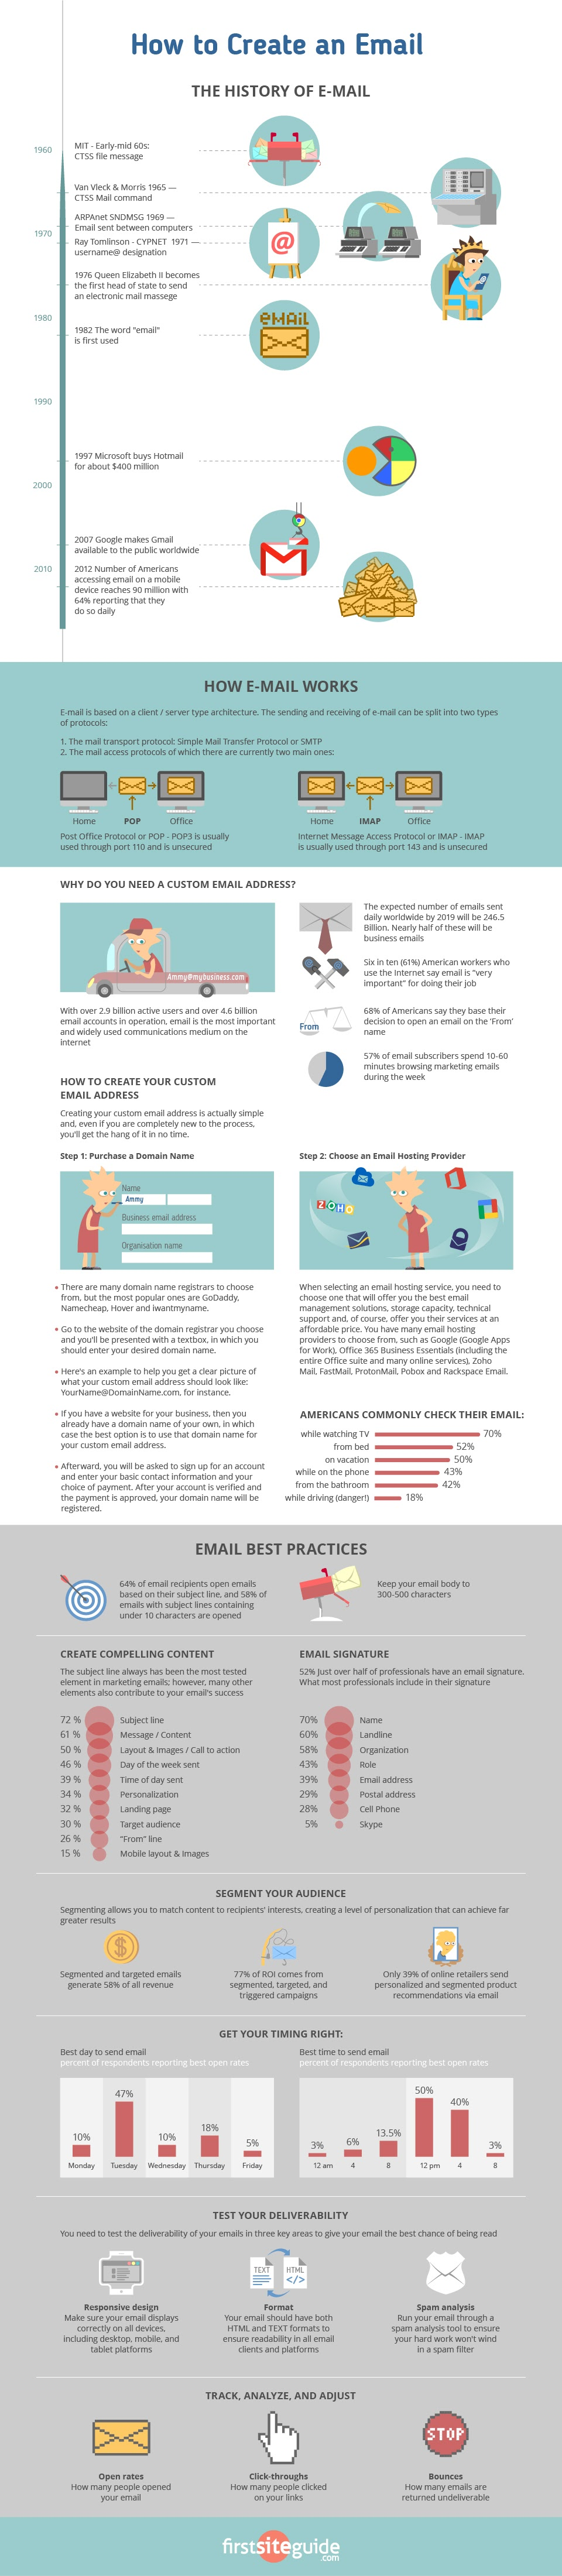 How to Create a Custom Email - #Infographic